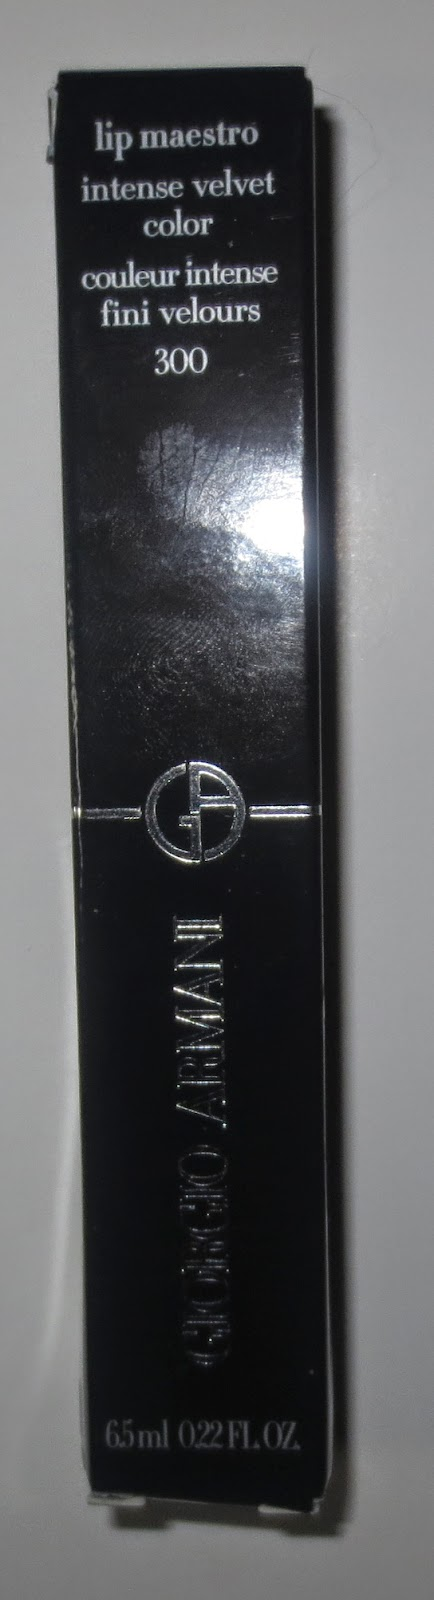 Giorgio Armani Lip Maestro 300 Flesh packaging